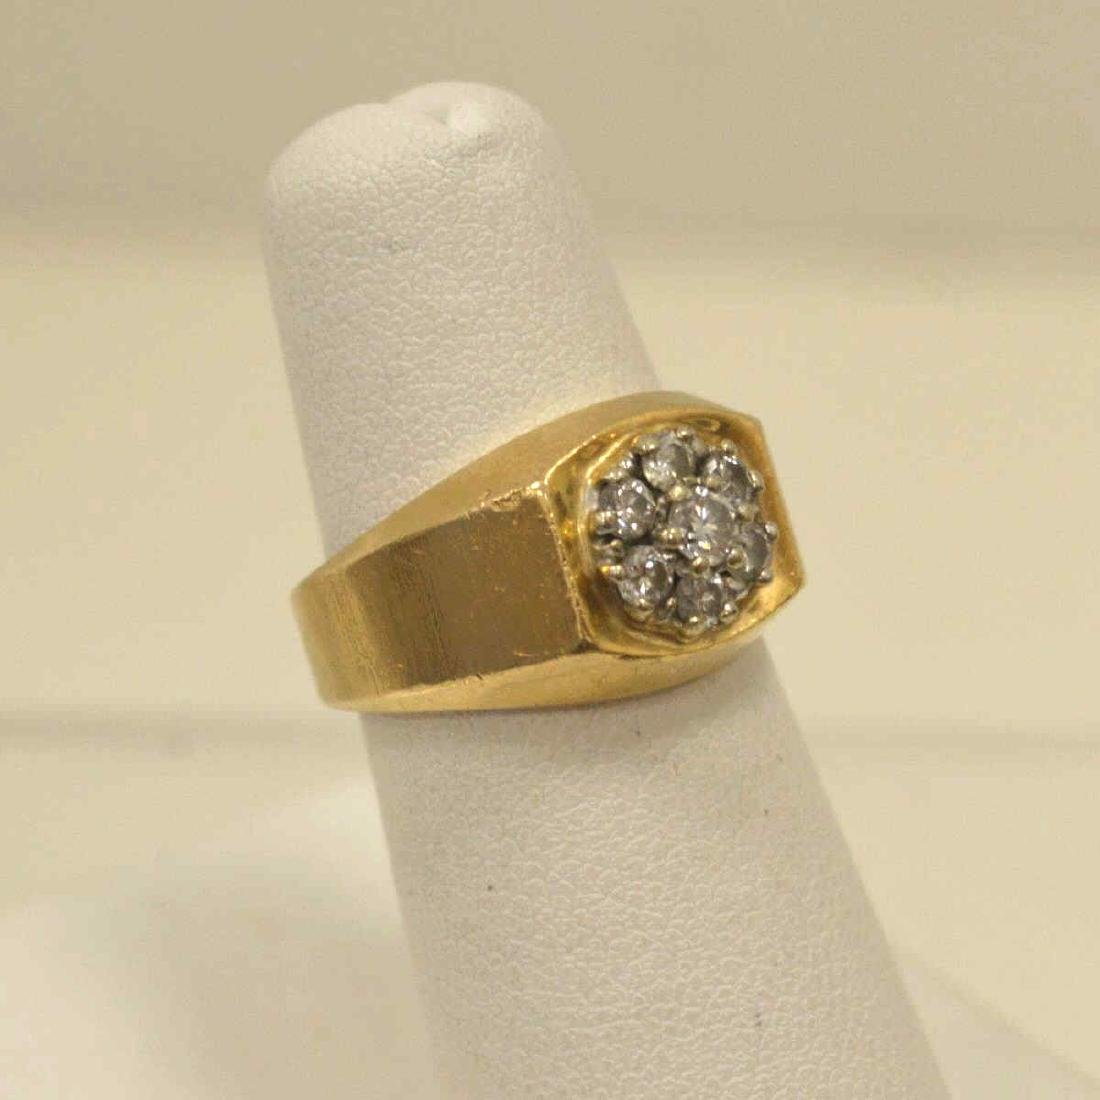 14kt yellow gold diamond cluster ring - 2